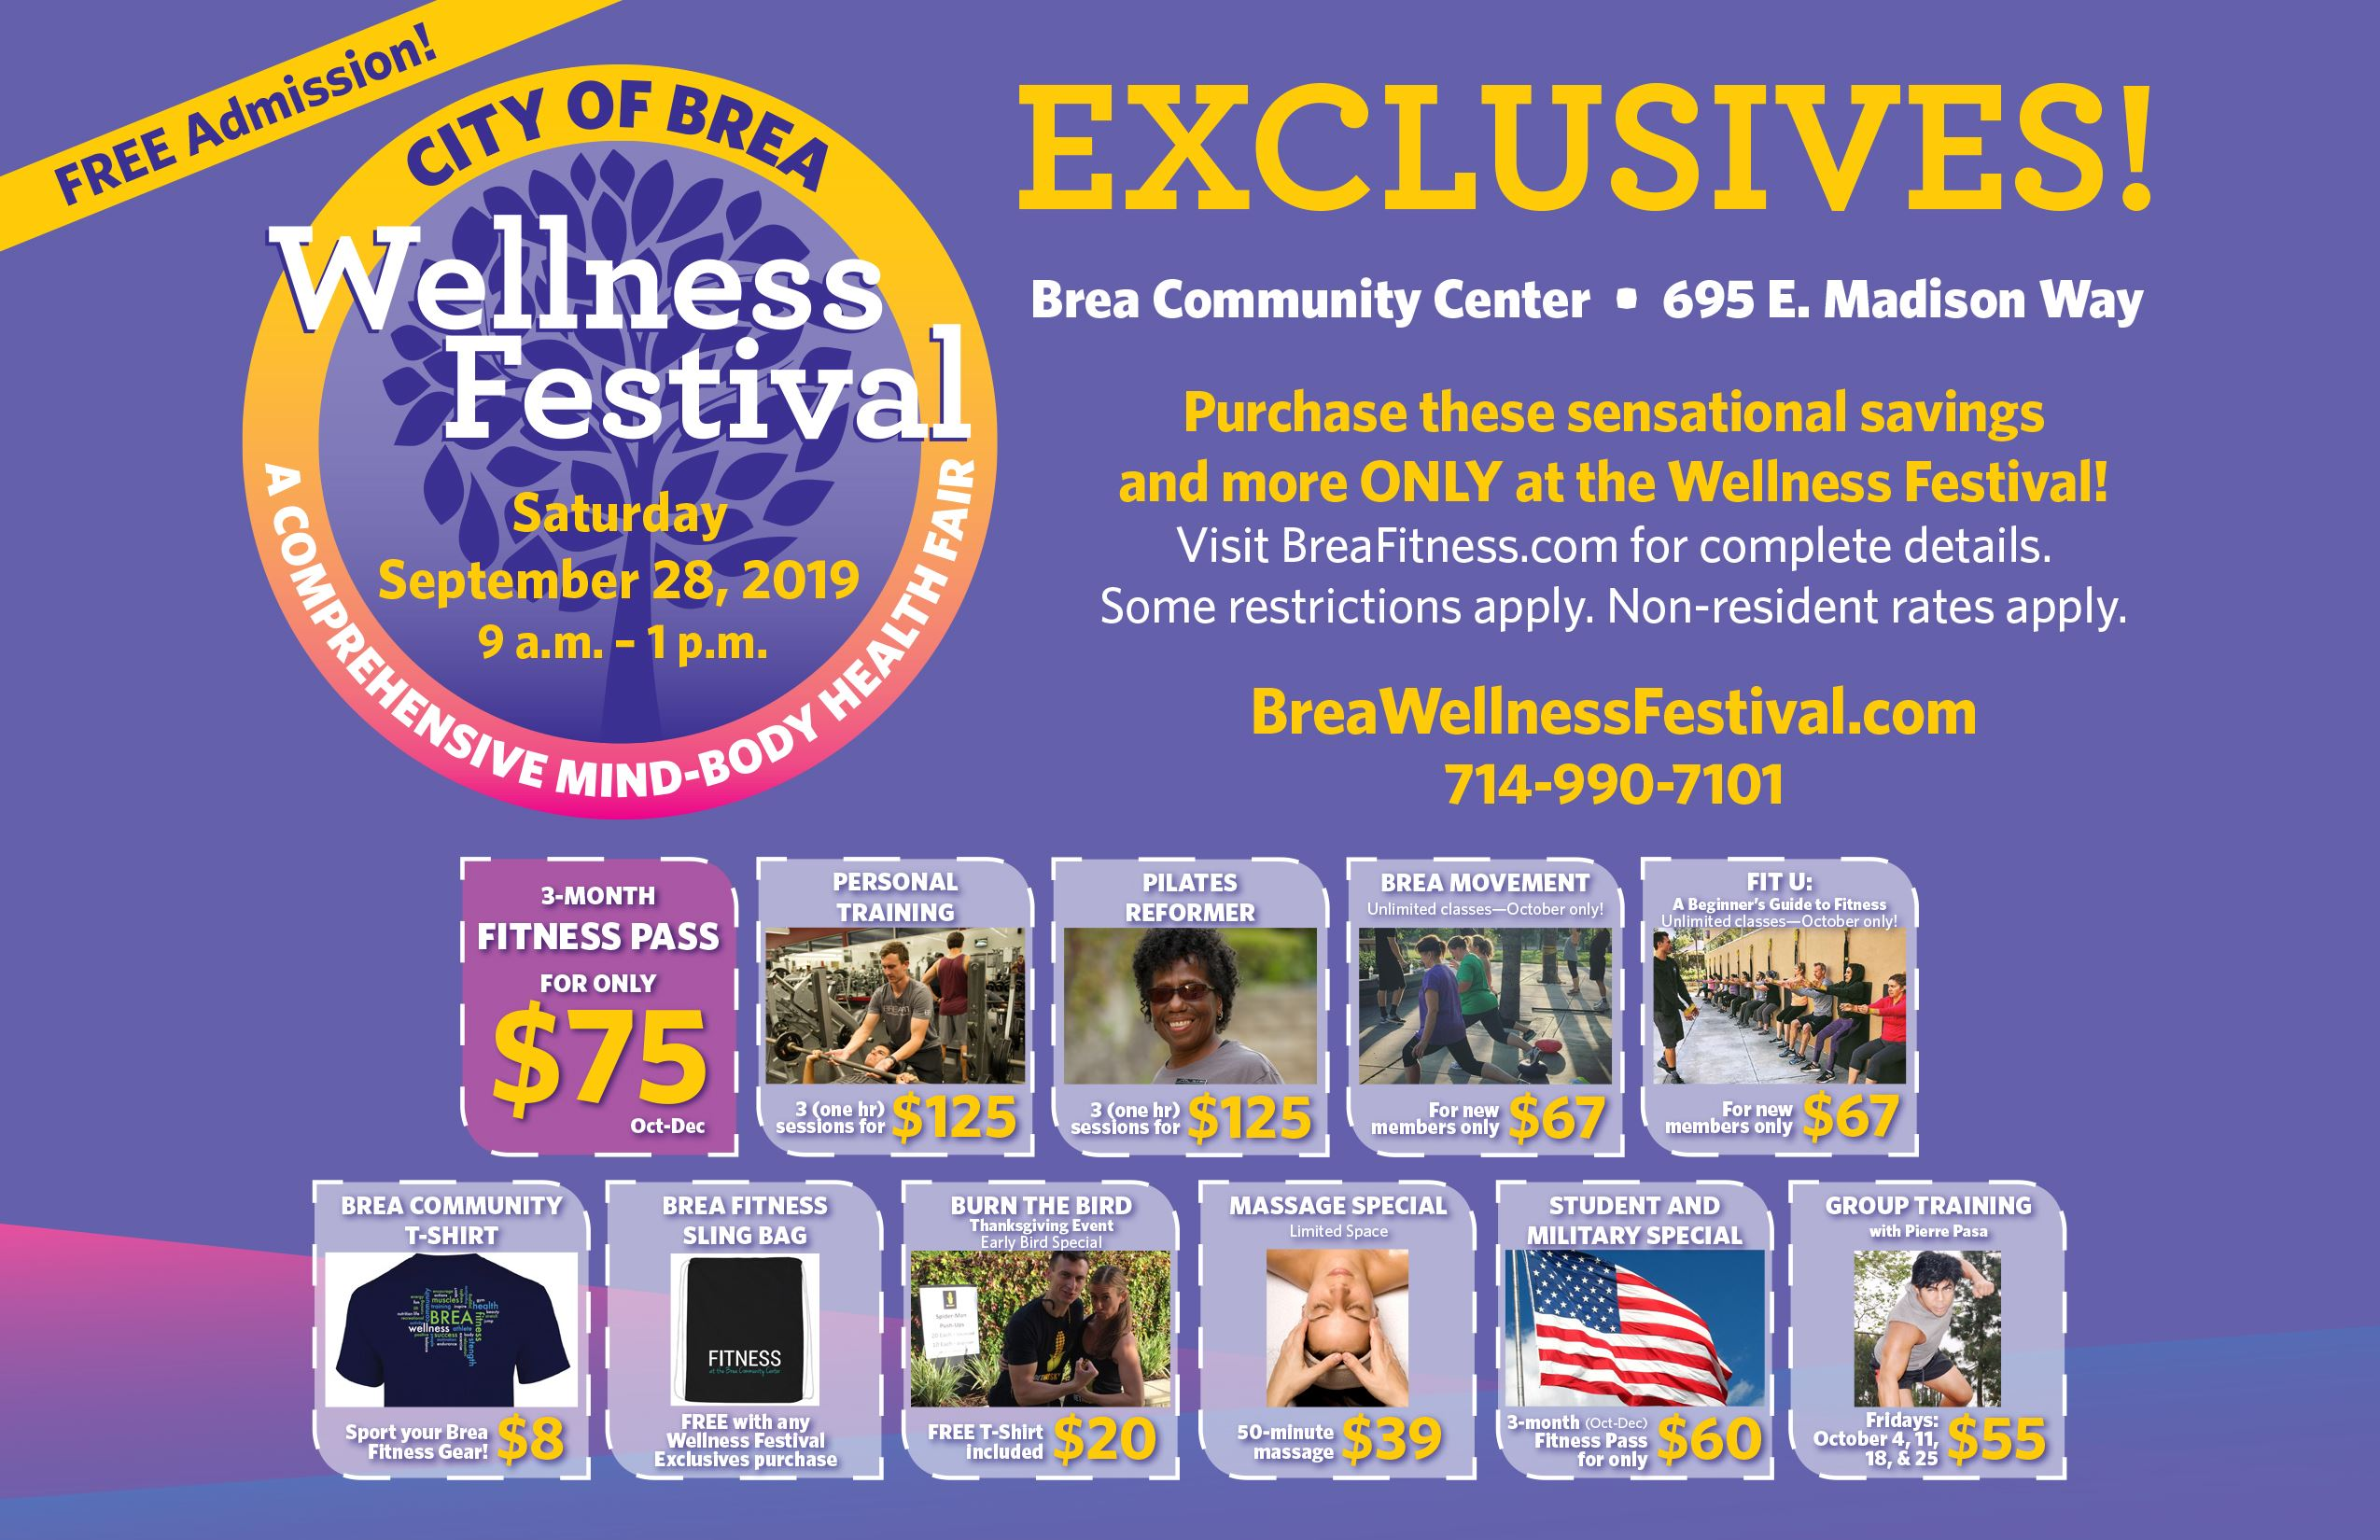 1942 City of Brea Wellness VISIX EXCLUSIVES 19